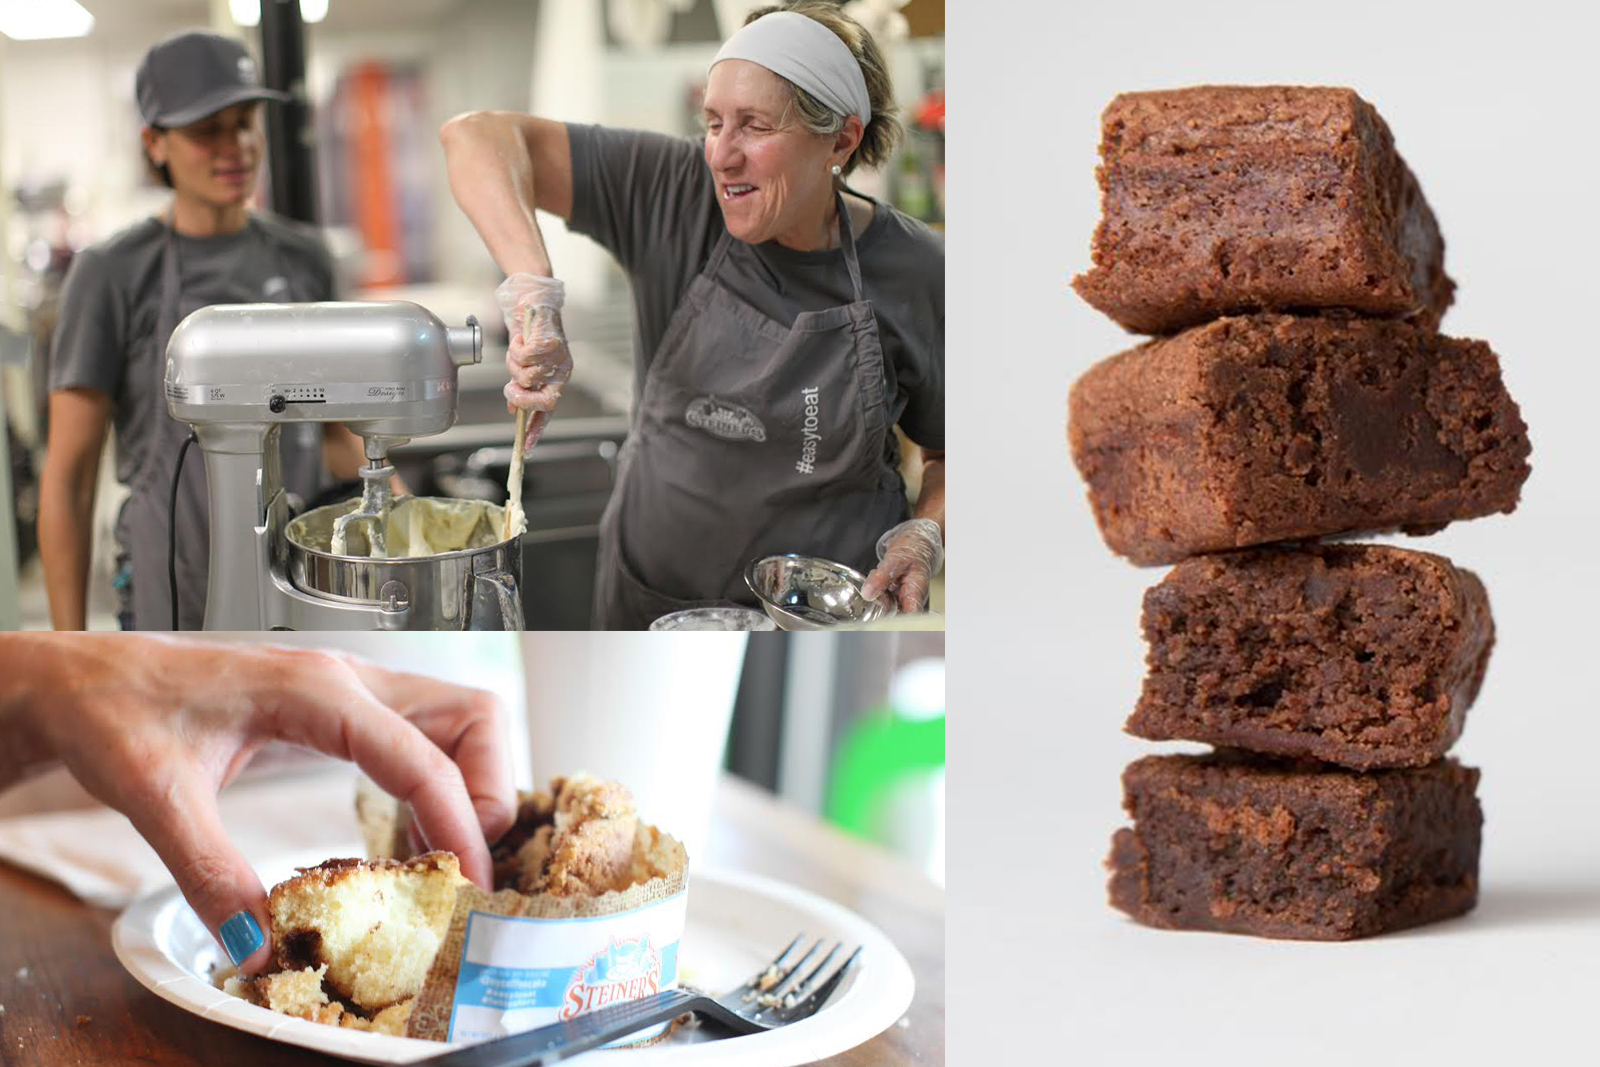 LOCAL FLAVOR: Steiner's Coffee Cake of New York